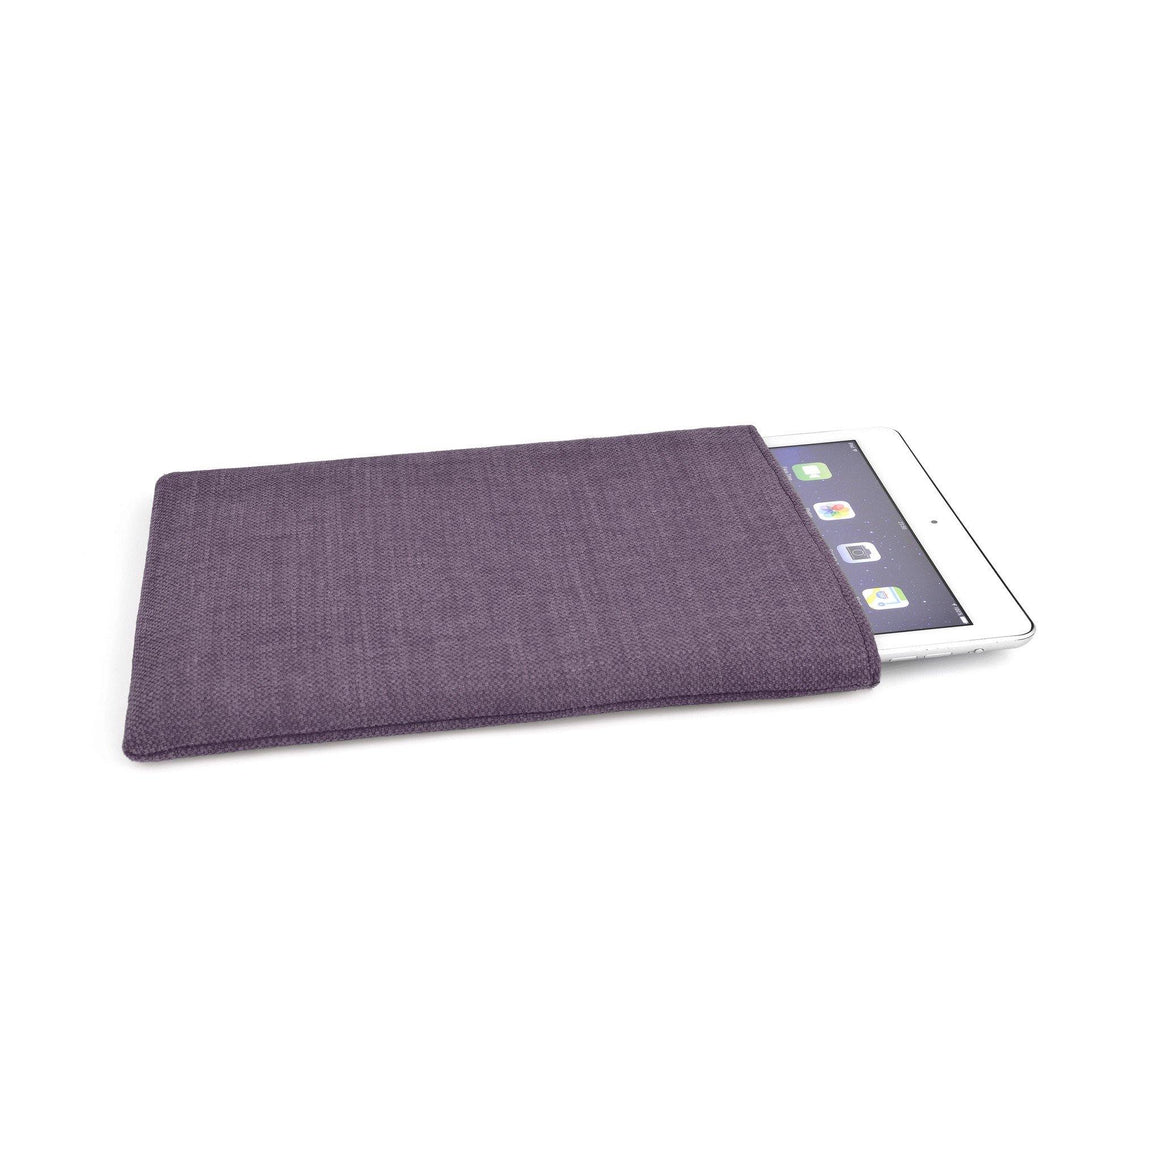 iPad Linen Mulberry - Wrappers UK